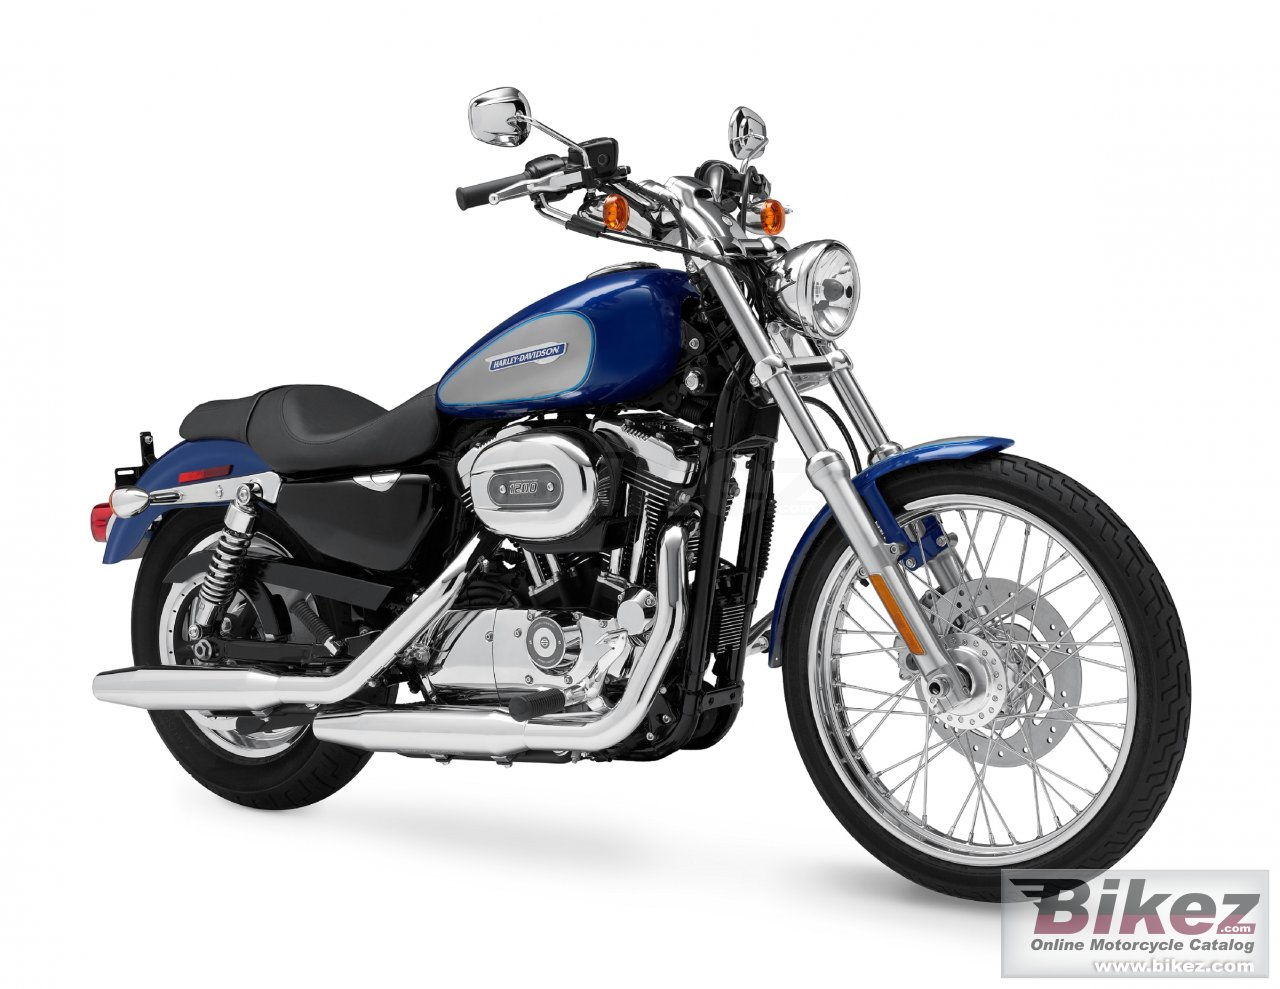 Big Harley-Davidson xl 1200c sportster 1200 custom picture and wallpaper from Bikez.com